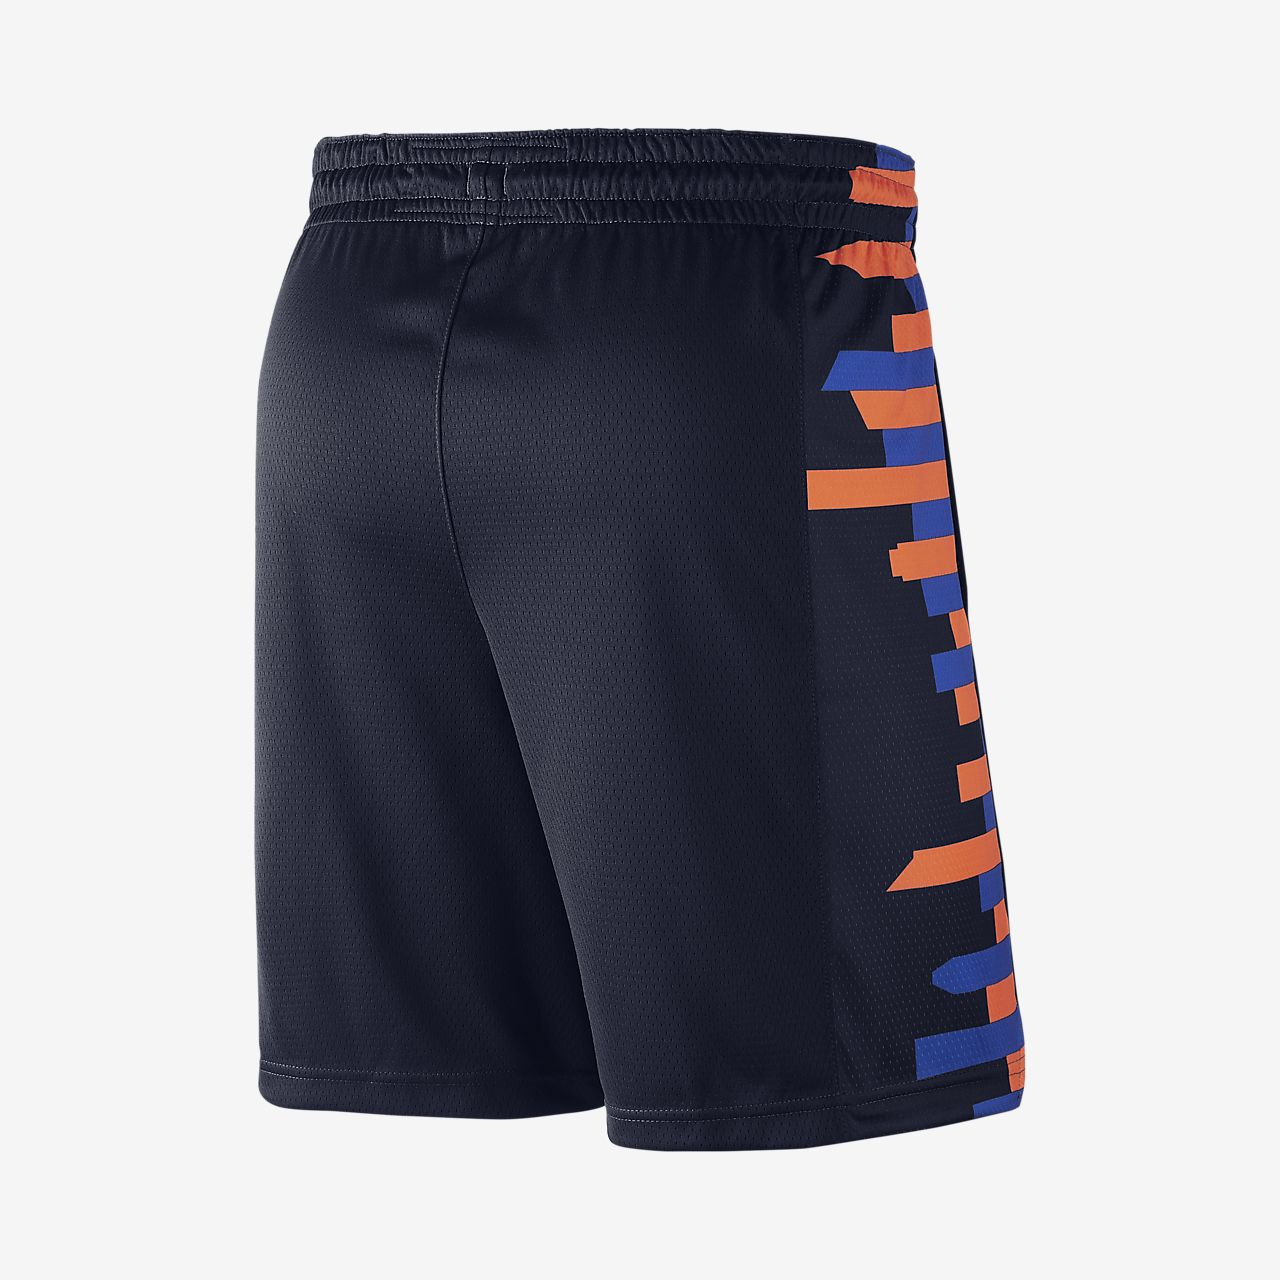 6b5f47a4e45 New York Knicks City Edition Swingman Men s Nike NBA Shorts. Nike.com VN